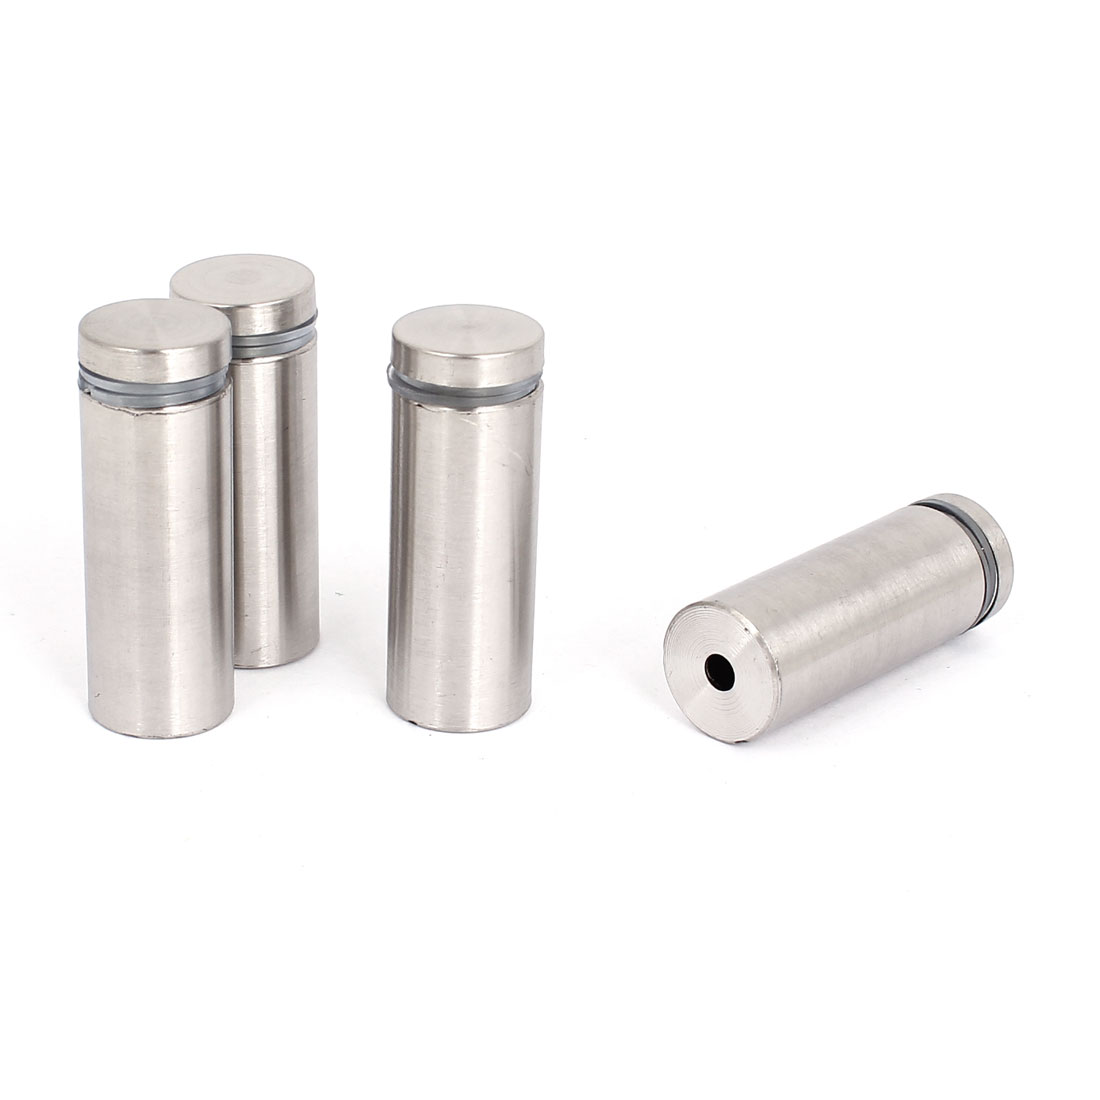 19mm x 50mm Stainless Steel Advertising Nails Glass Standoff Hardware 4 Pcs